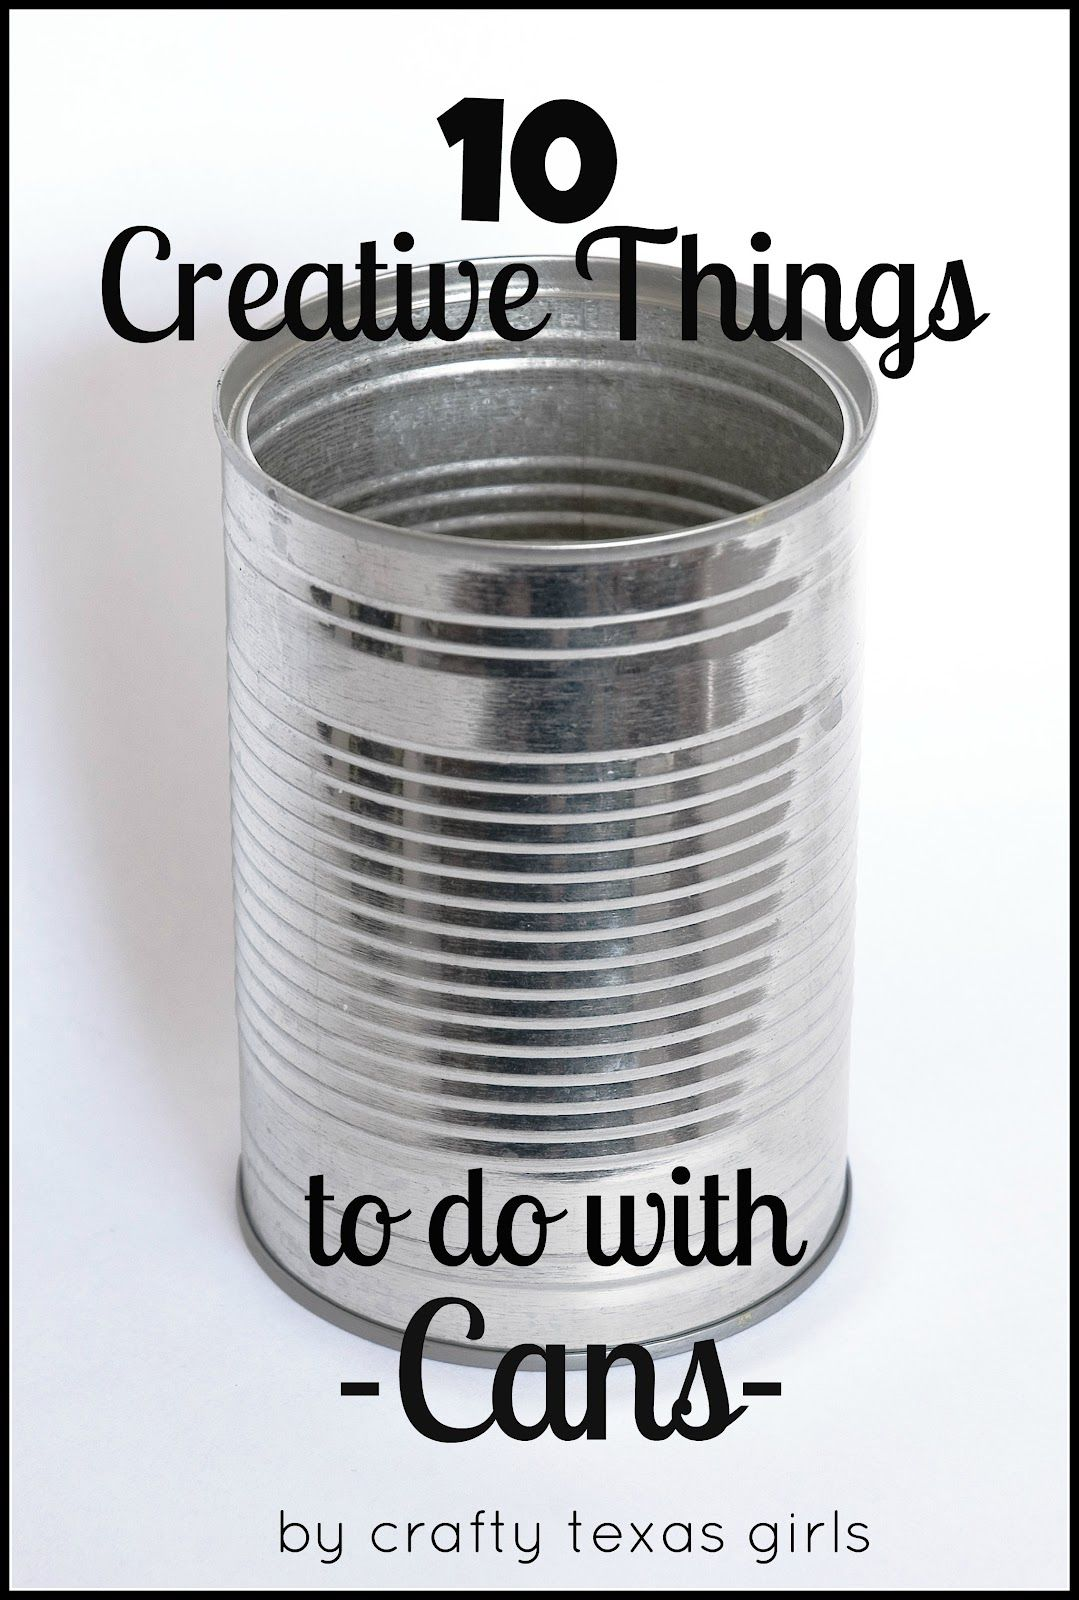 Crafty Texas Girls 10 Creative Things To Do With Cans Tin Can Crafts Recycled Crafts Can Crafts